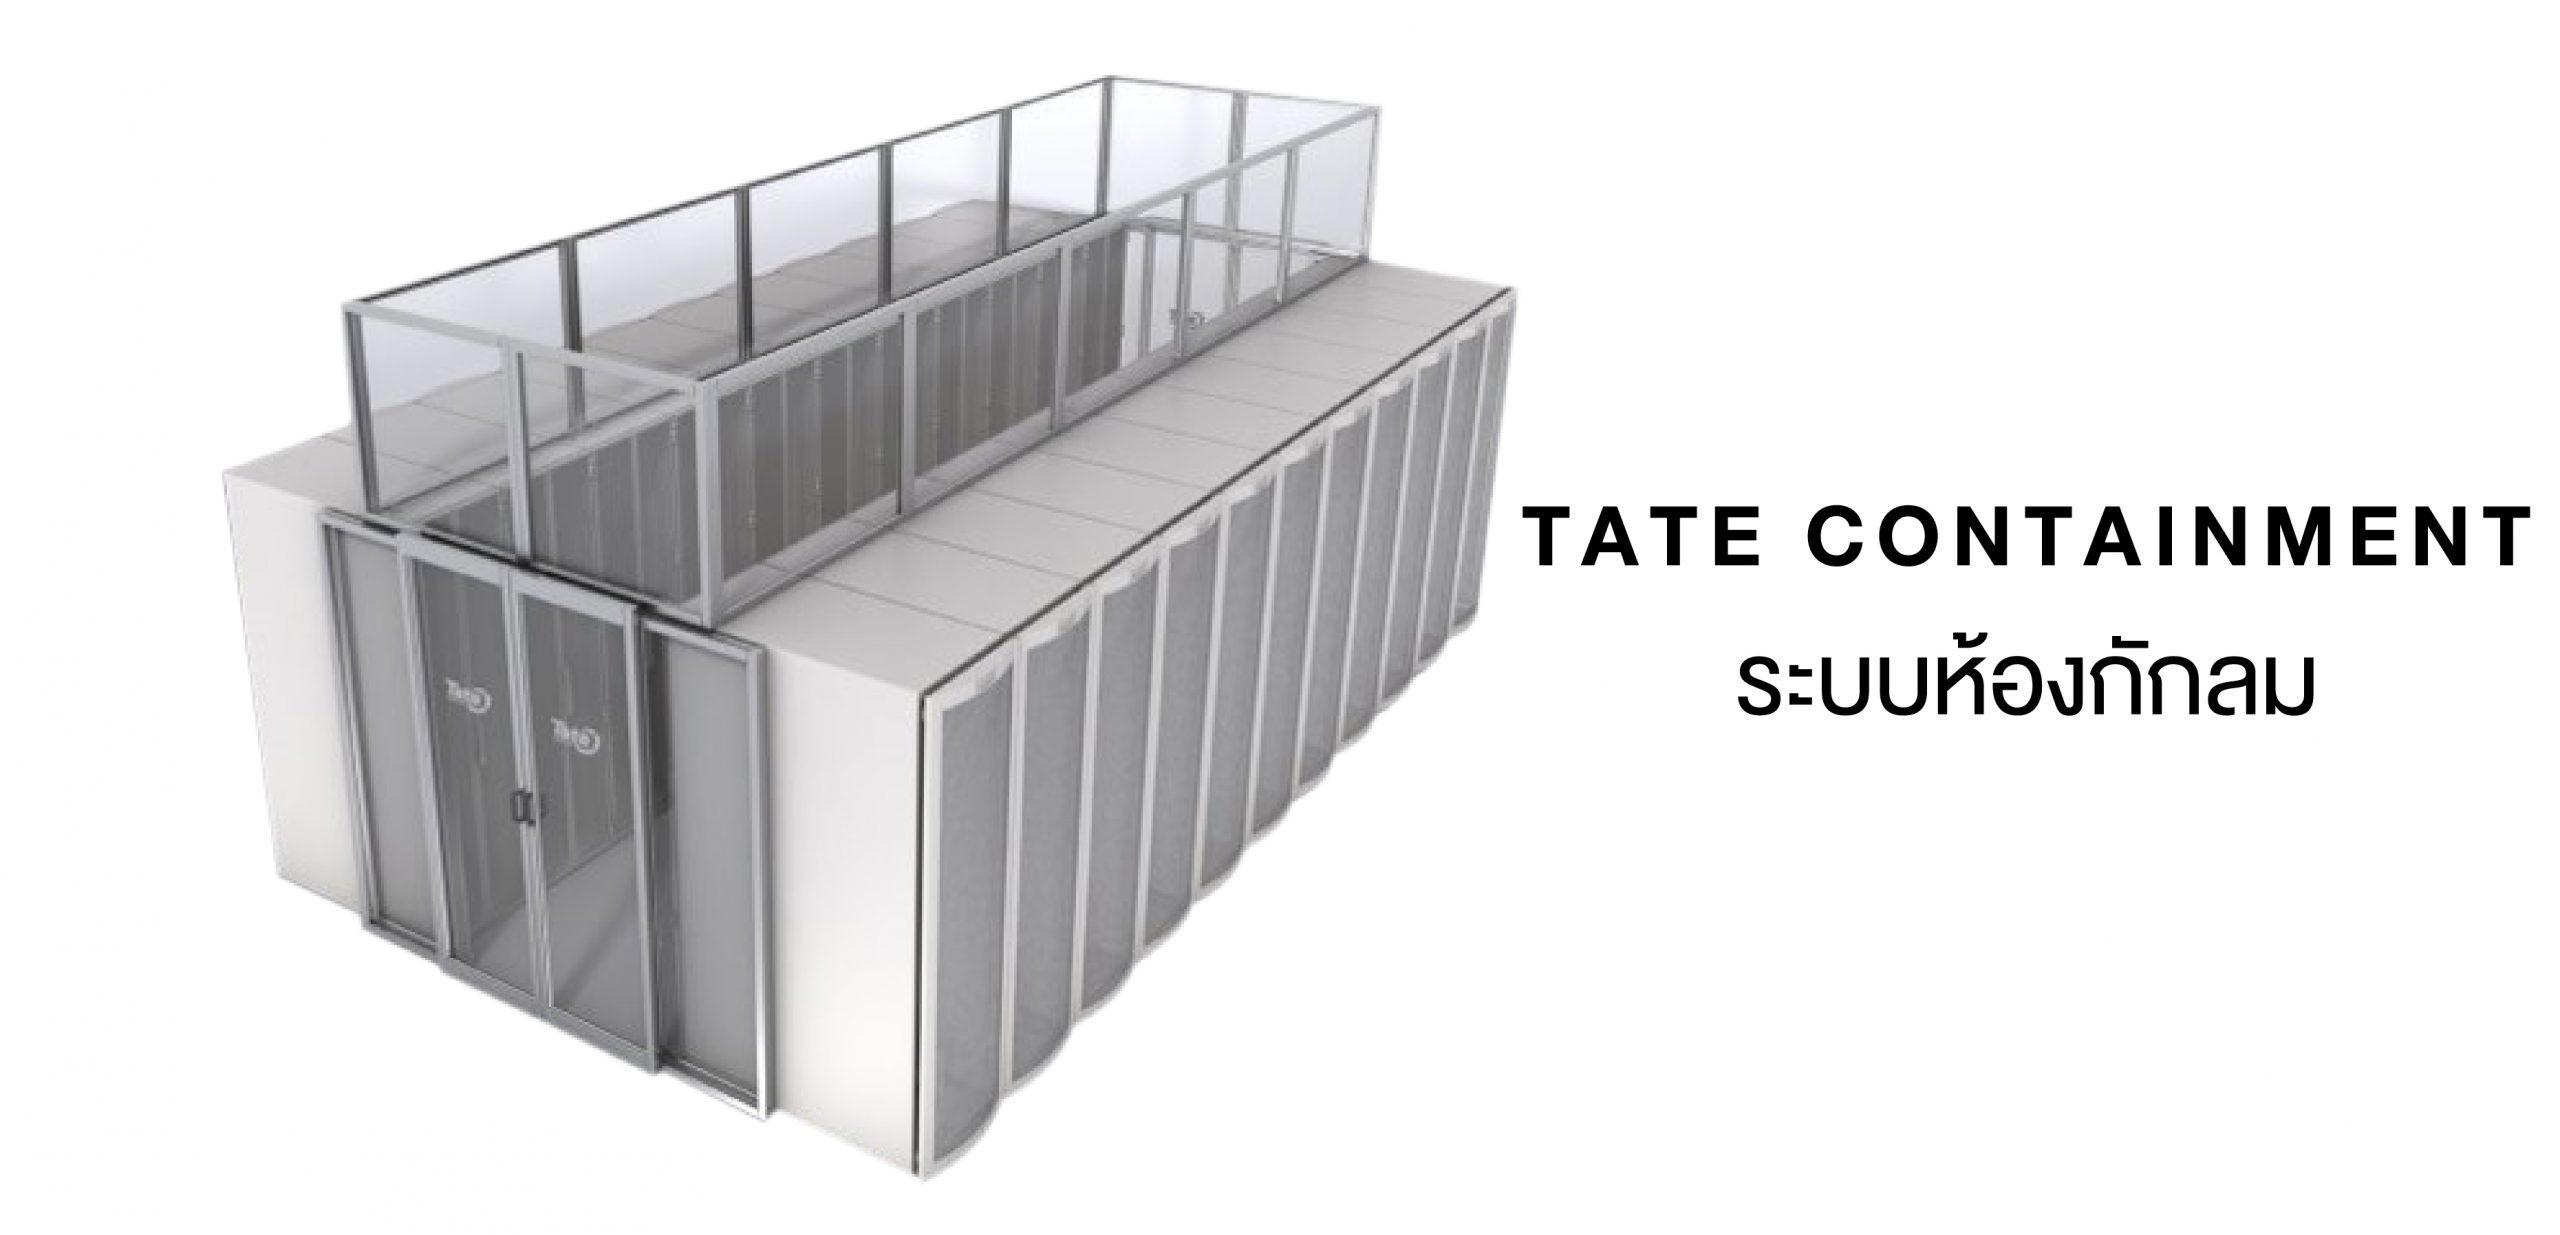 TATE Containment